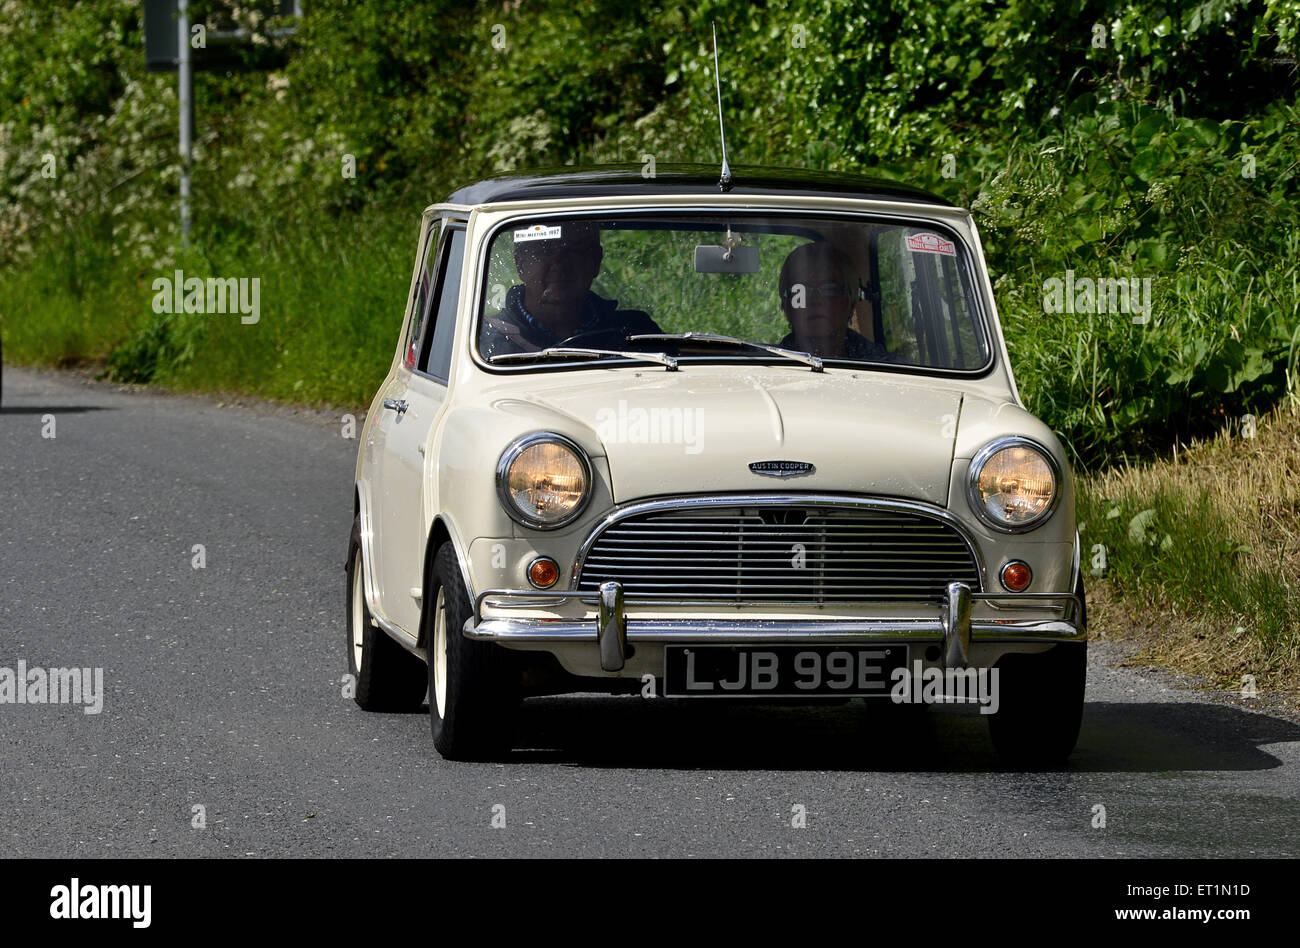 1960s Austin Mini Cooper classic car on country road, Burnfoot, County Donegal, Ireland. - Stock Image